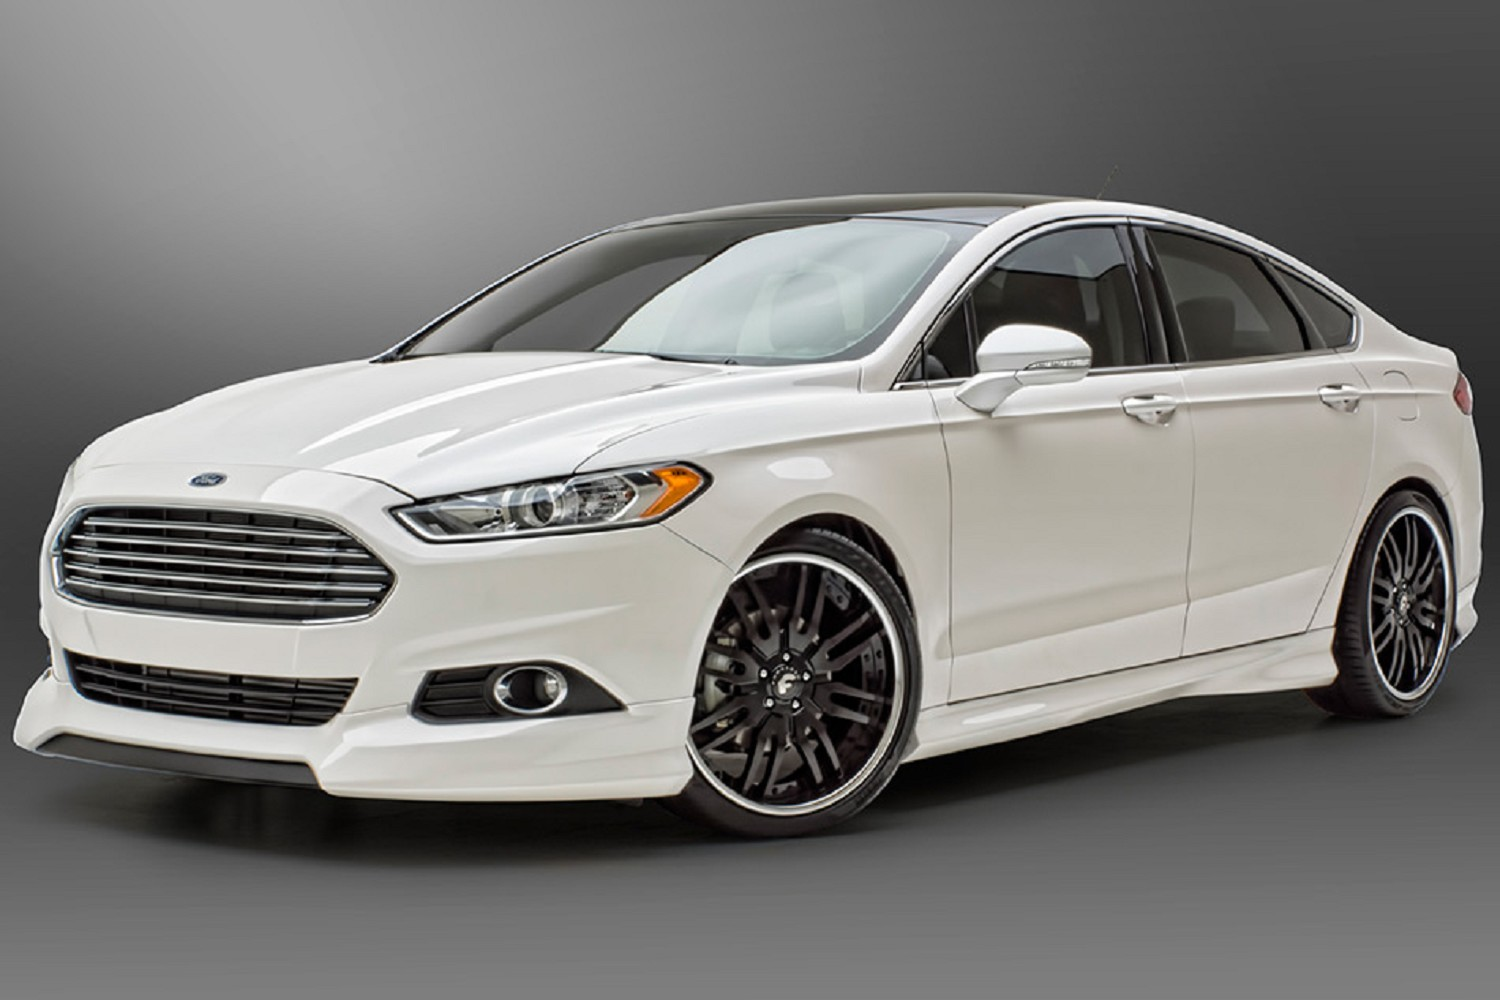 114D Carbon 14 Piece Ford Fusion Body Kit - 1114-114 | ford fusion